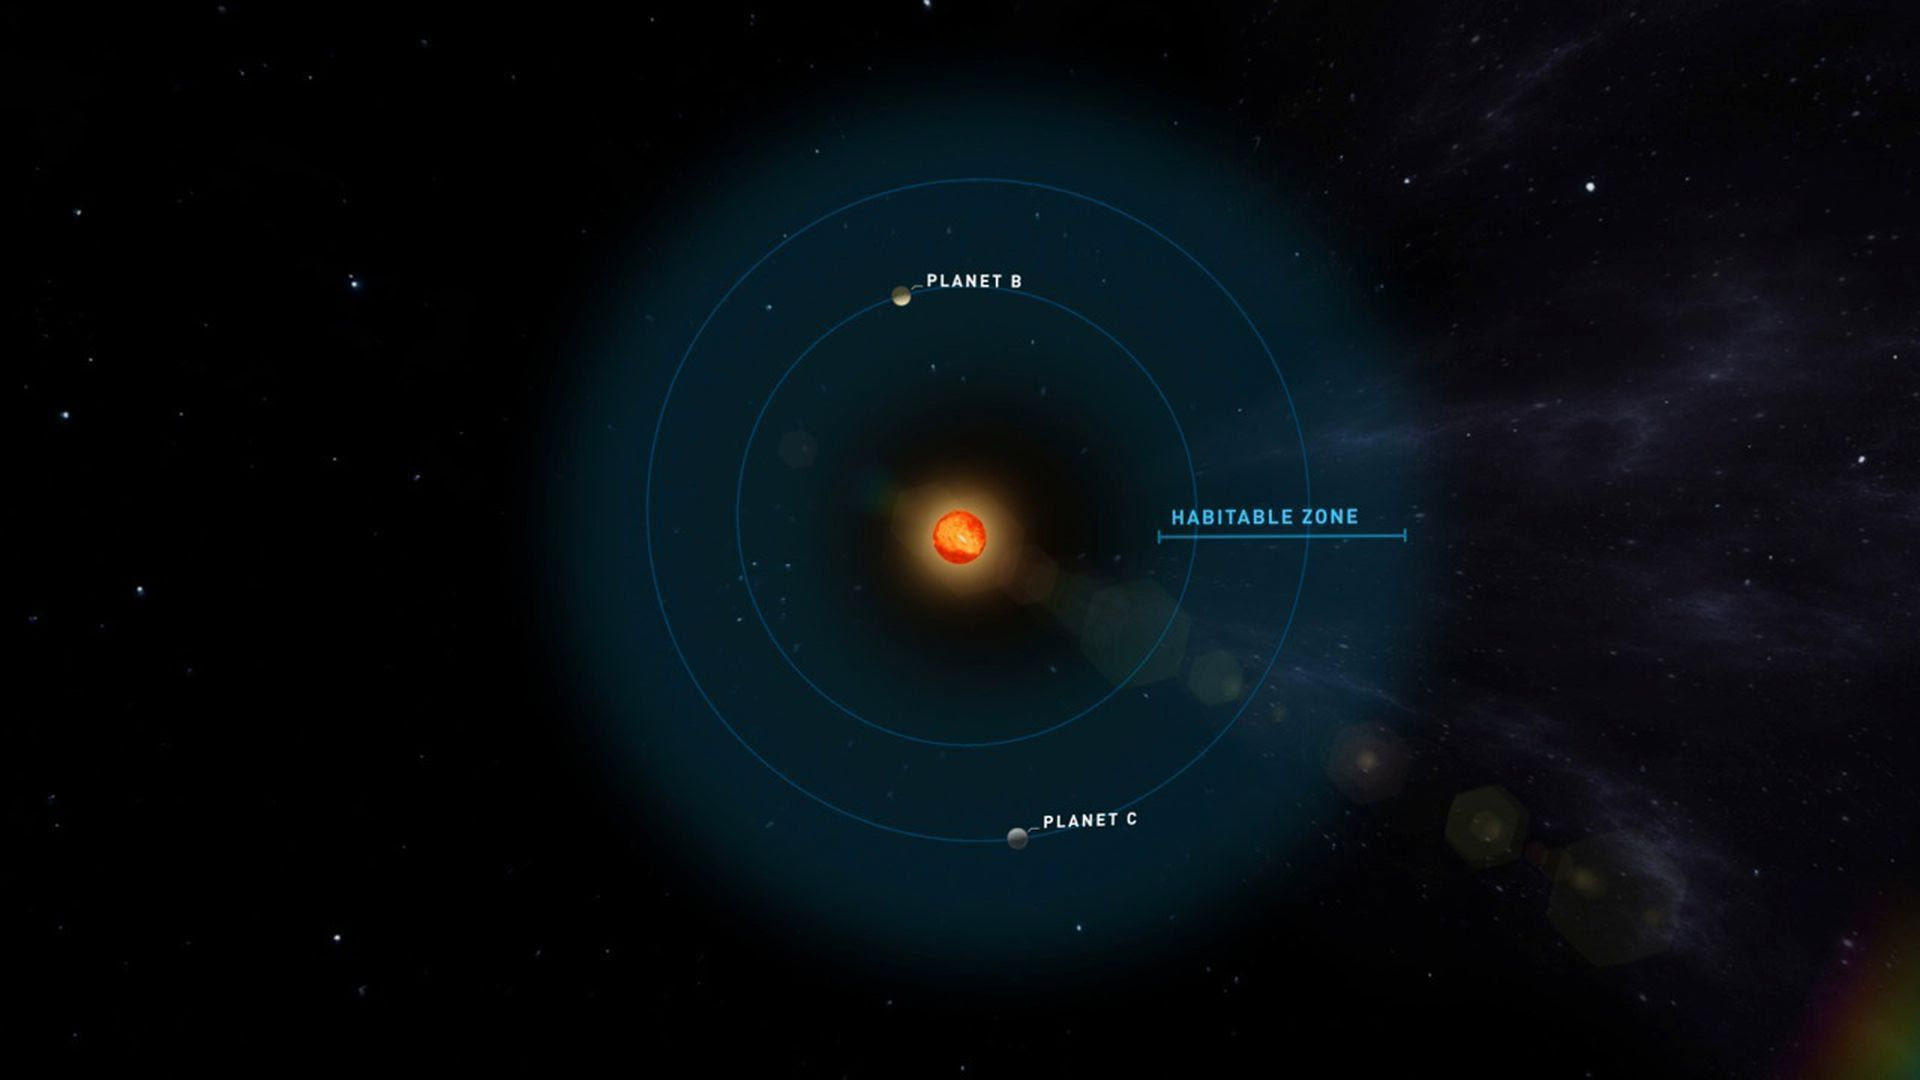 An illustration of 2 potentially habitable planets.